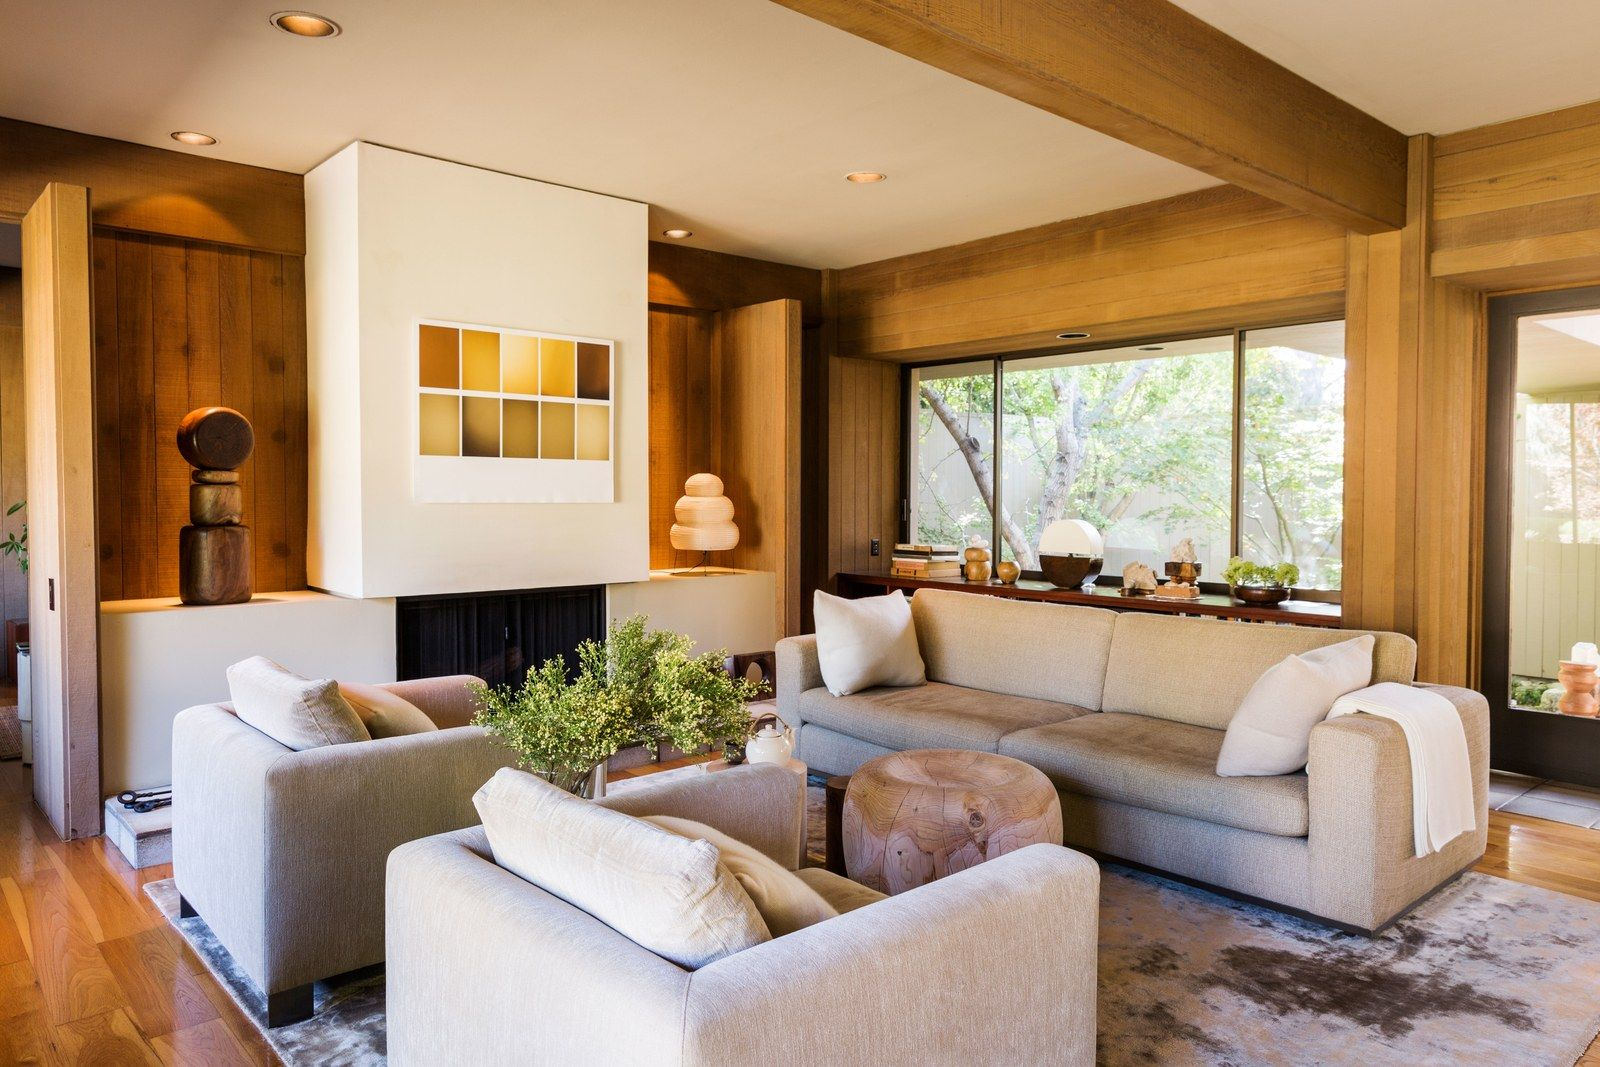 A JapanInspired Modernist Showpiece in California One